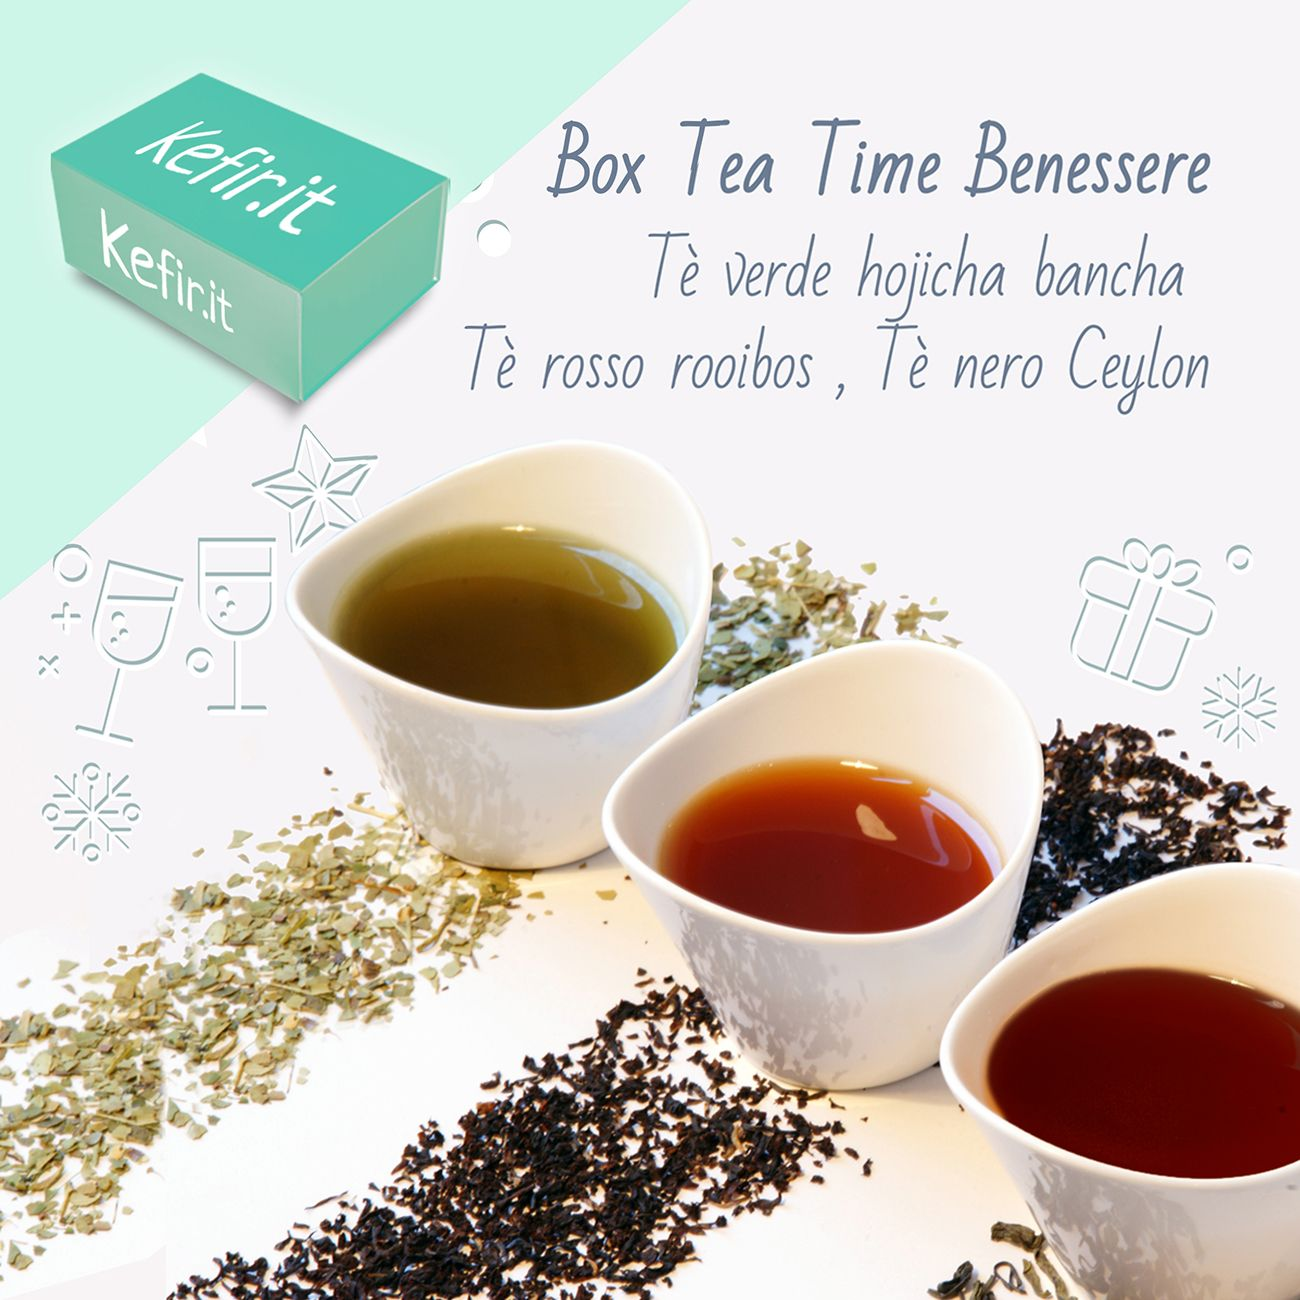 BOX TEA TIME BENESSERE